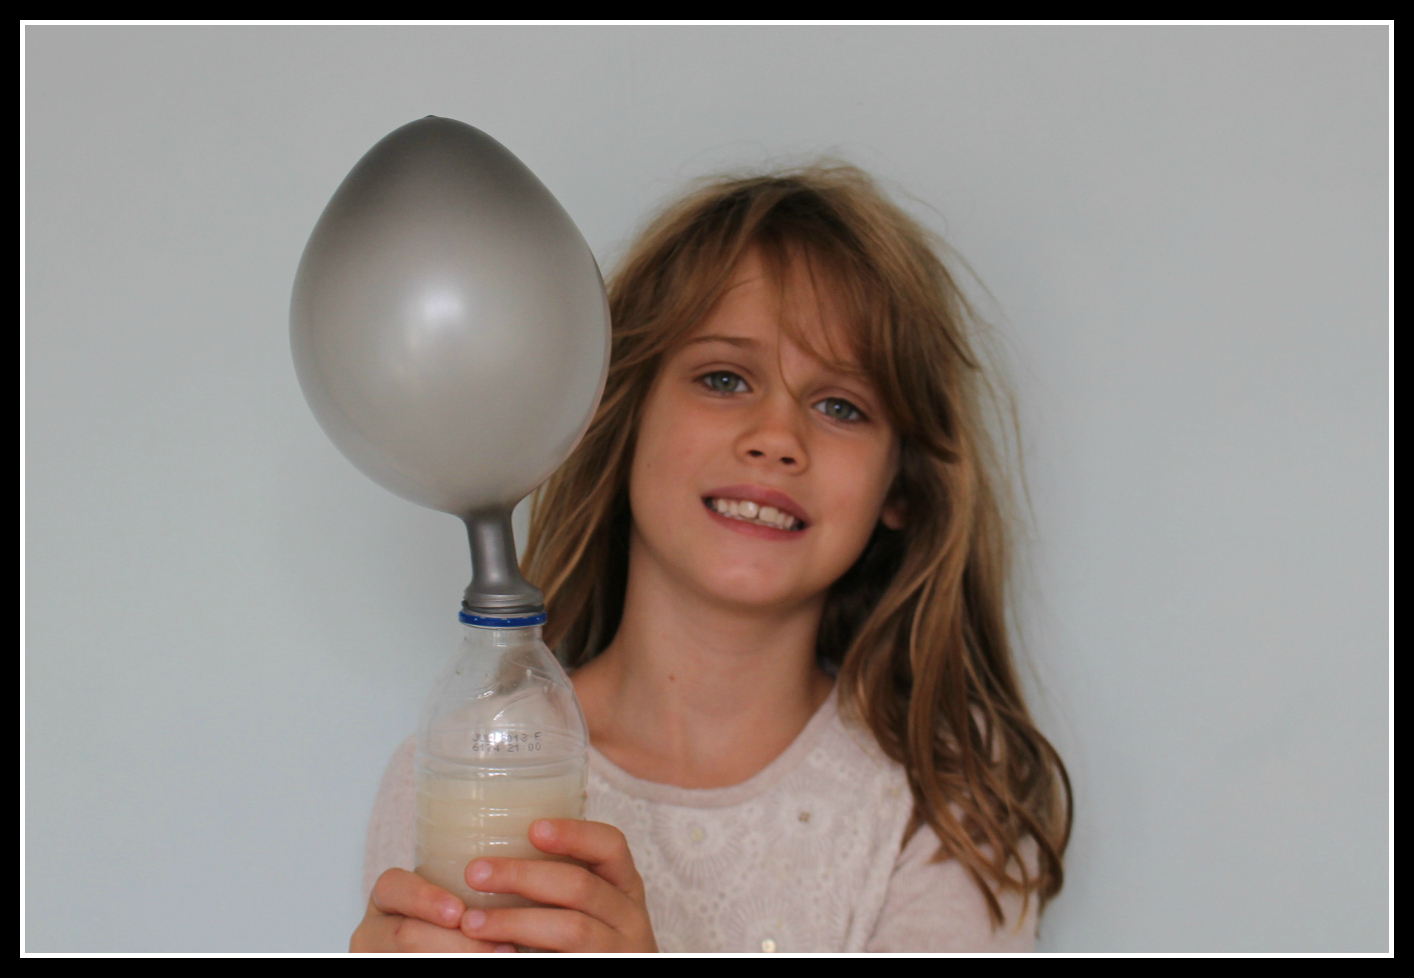 House of Experiments: easy science experiments for children on YouTube